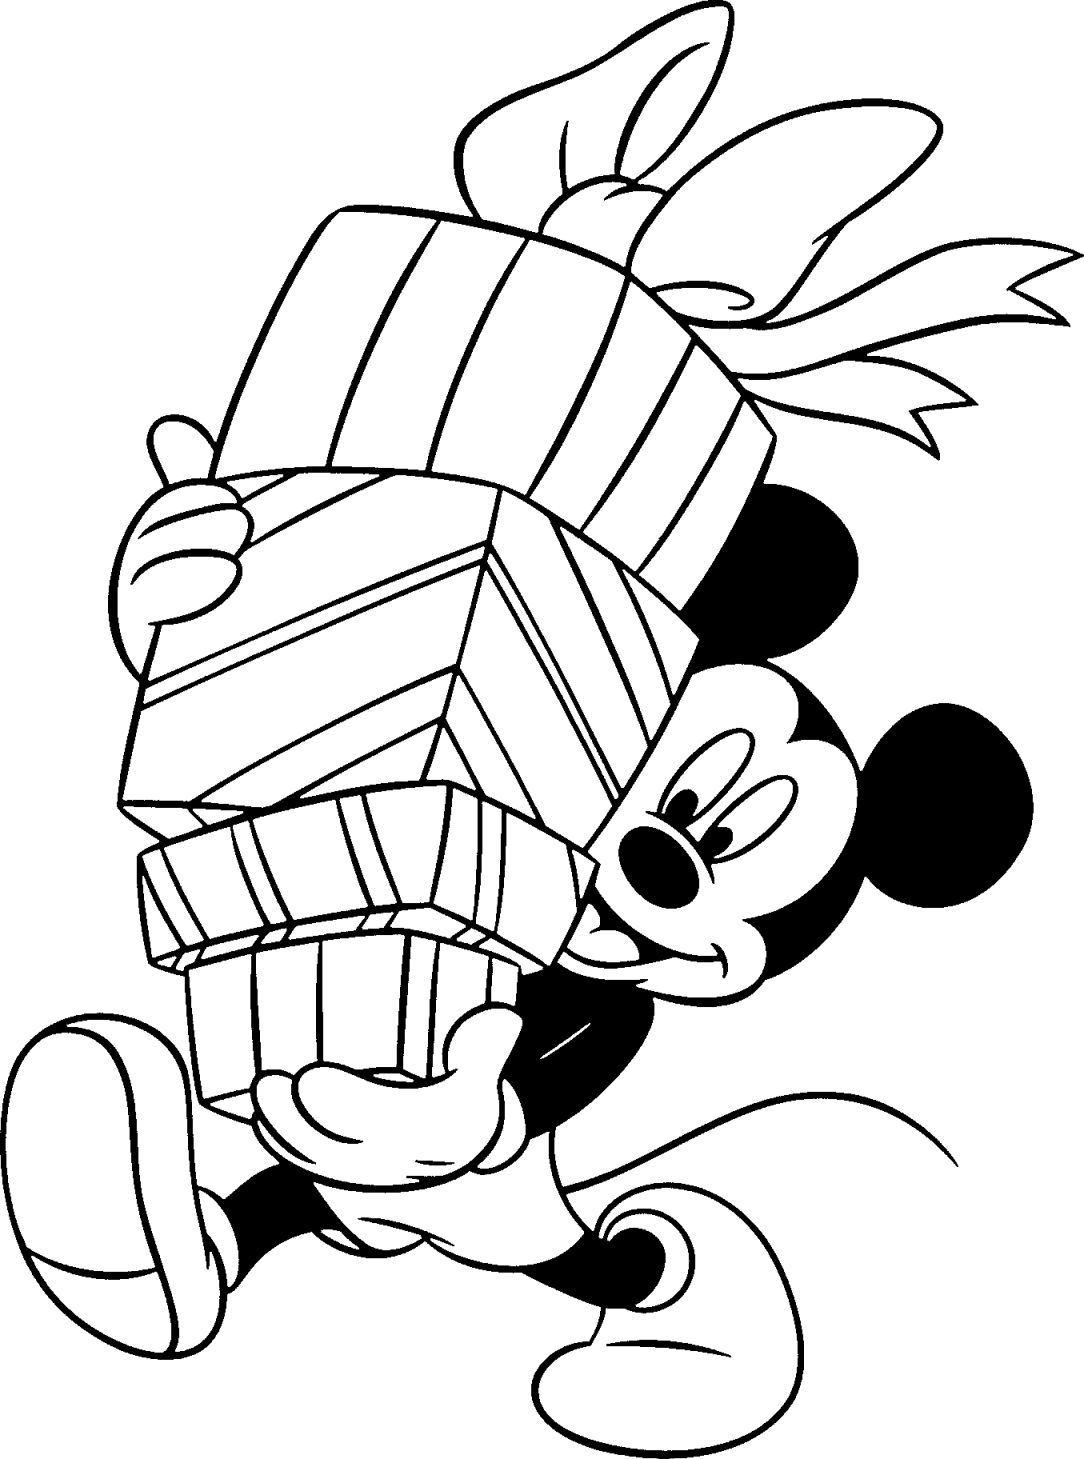 Birthday Mickey Mouse Coloring Pages Free Online Printable Sheets For Kids Get The Latest Images